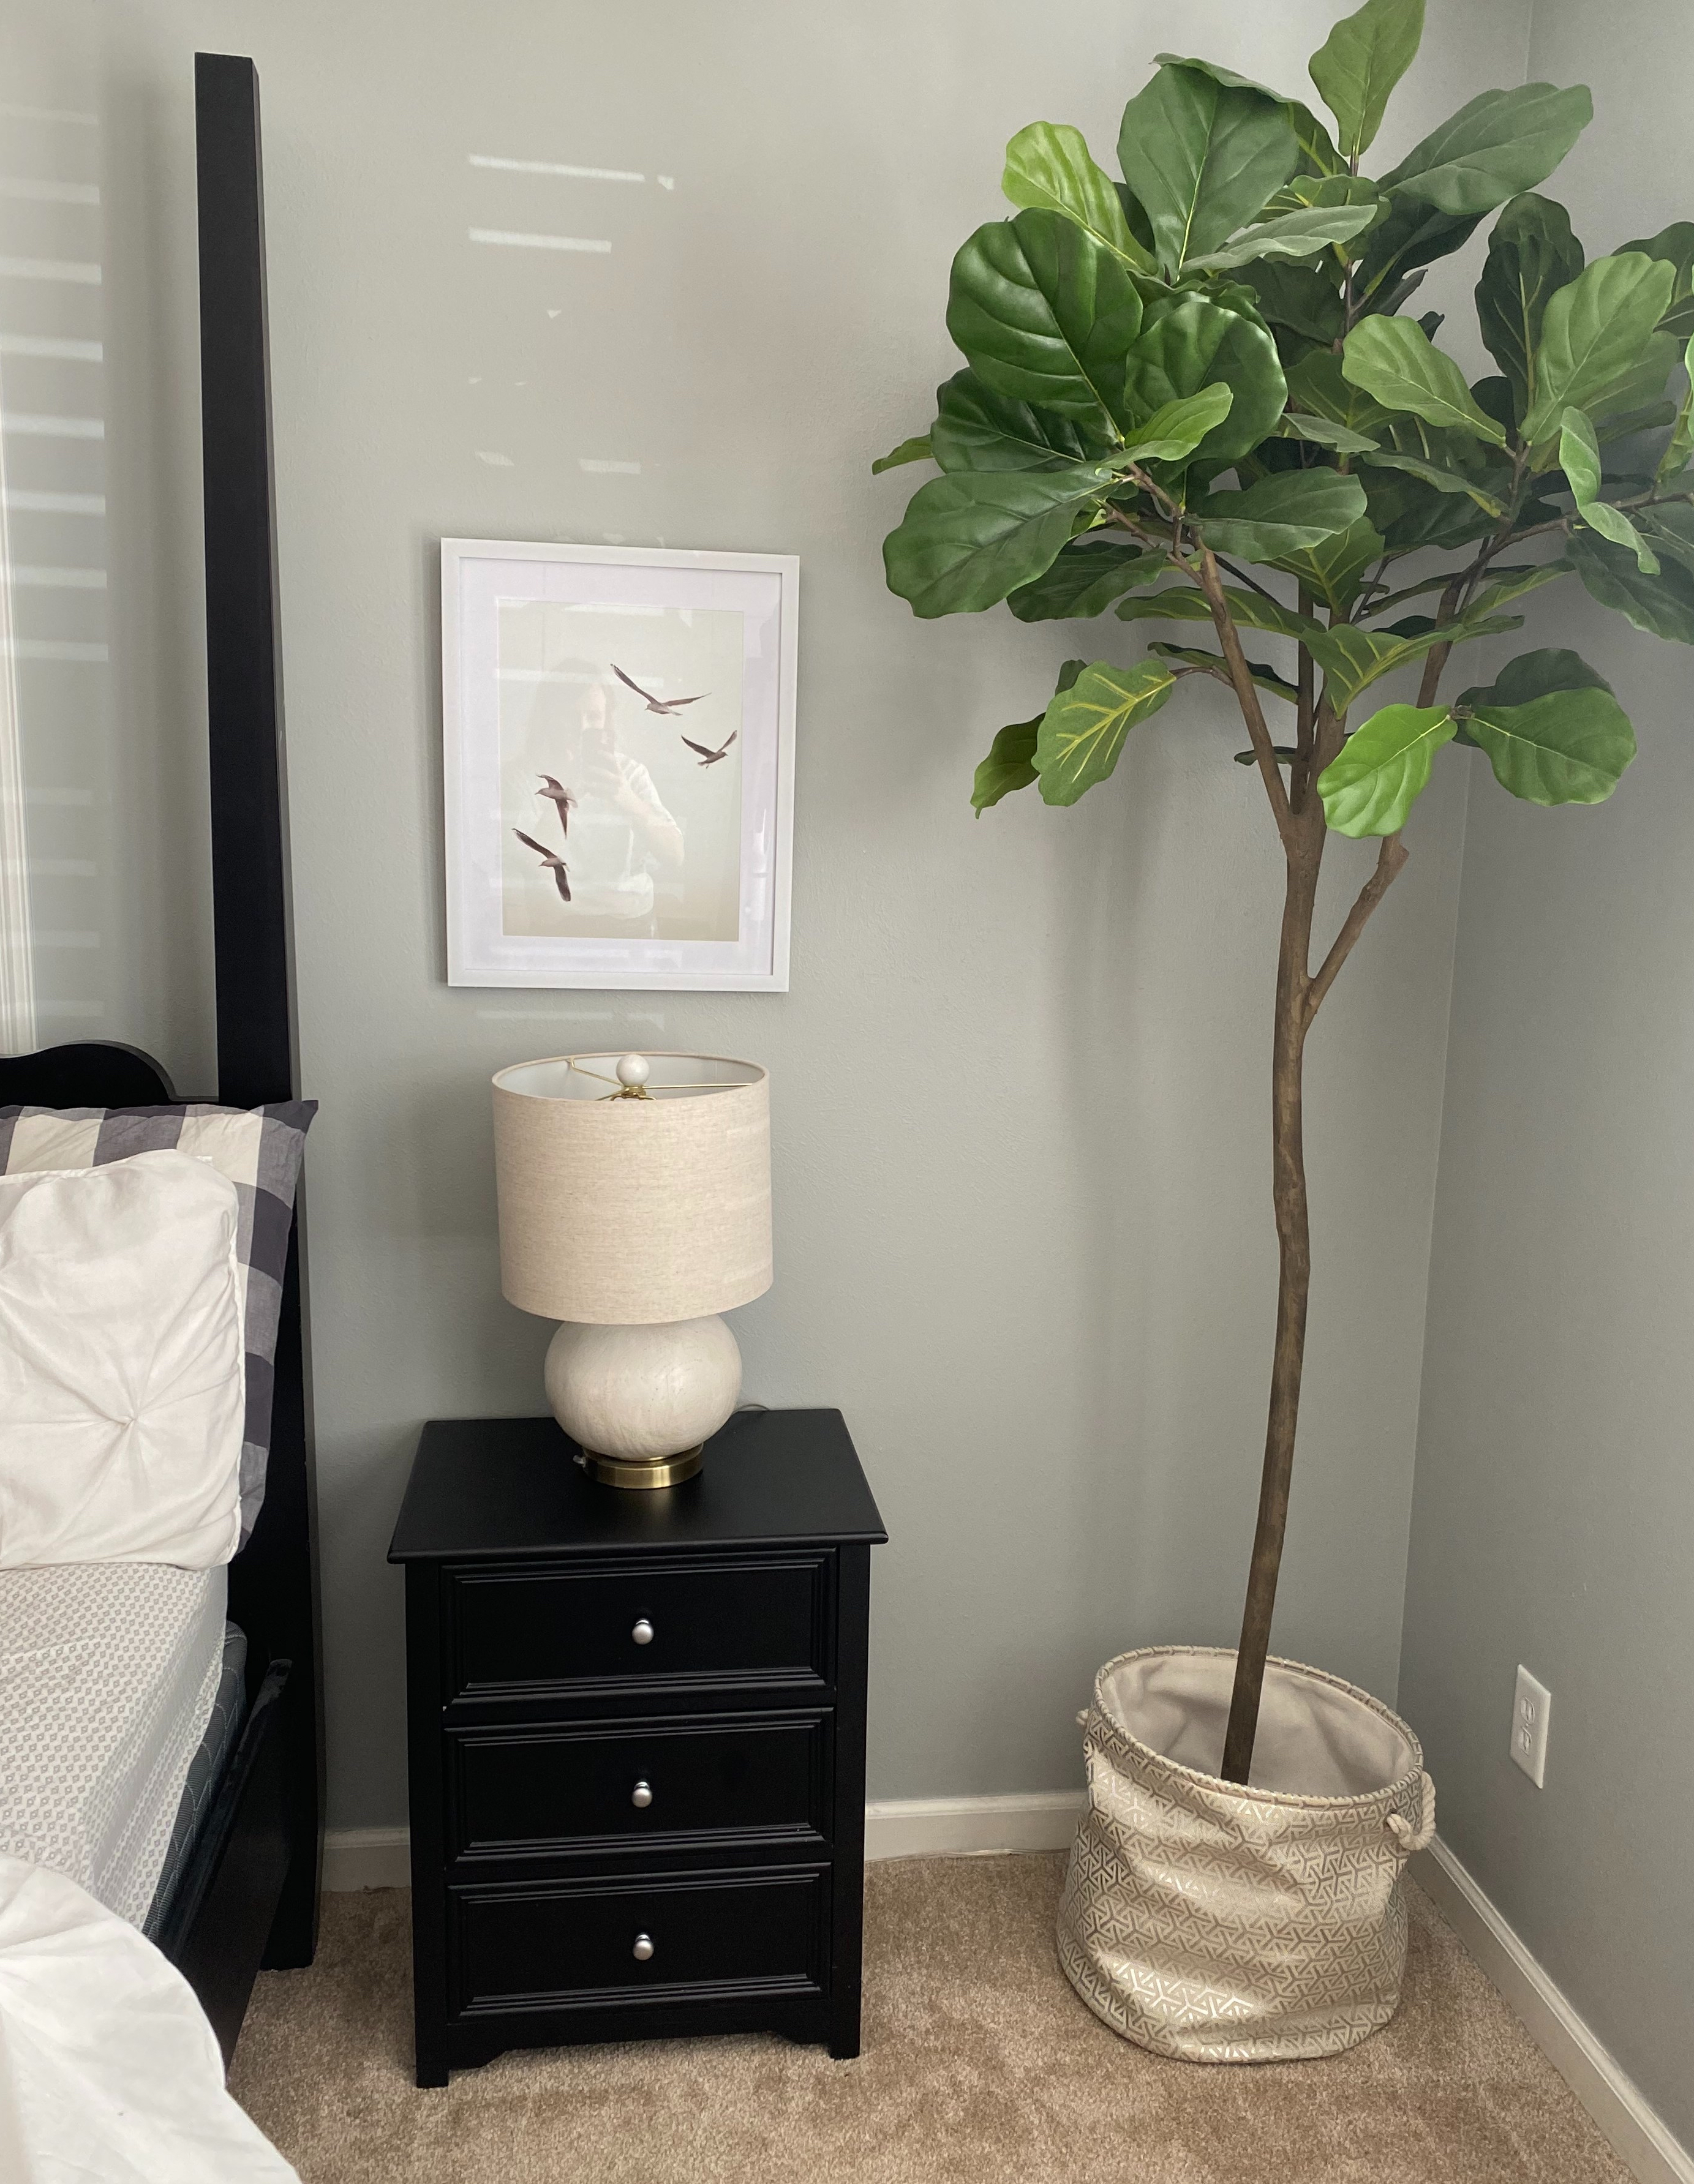 Bedroom end table decor